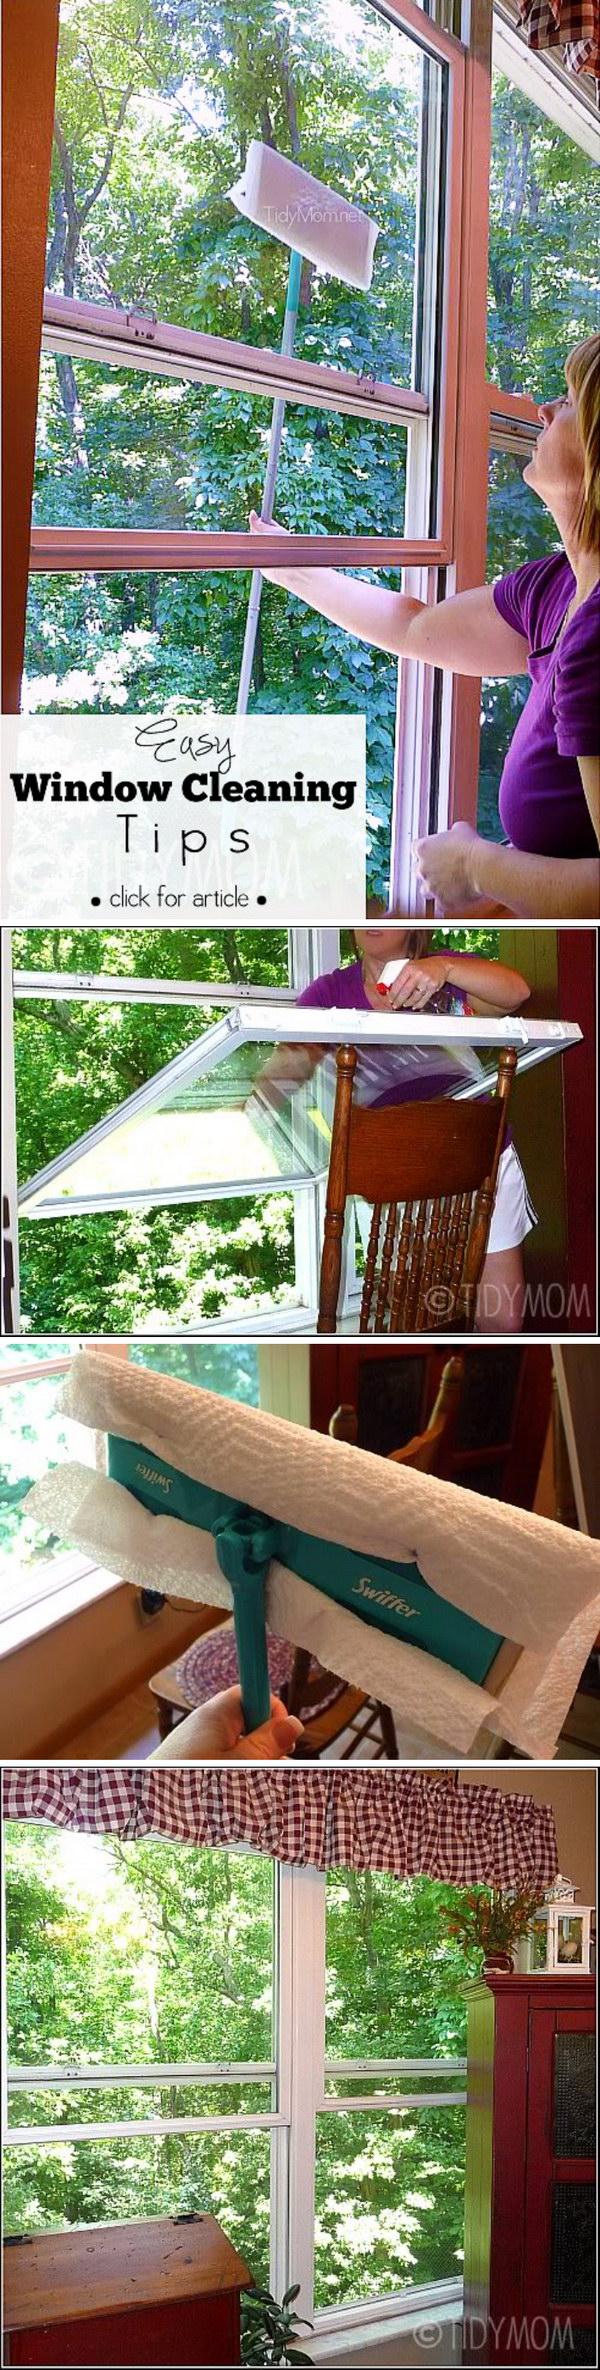 Easy Window Cleaning Tip with Swiffer Floor Tool, Paper Towel and Window Cleaner.